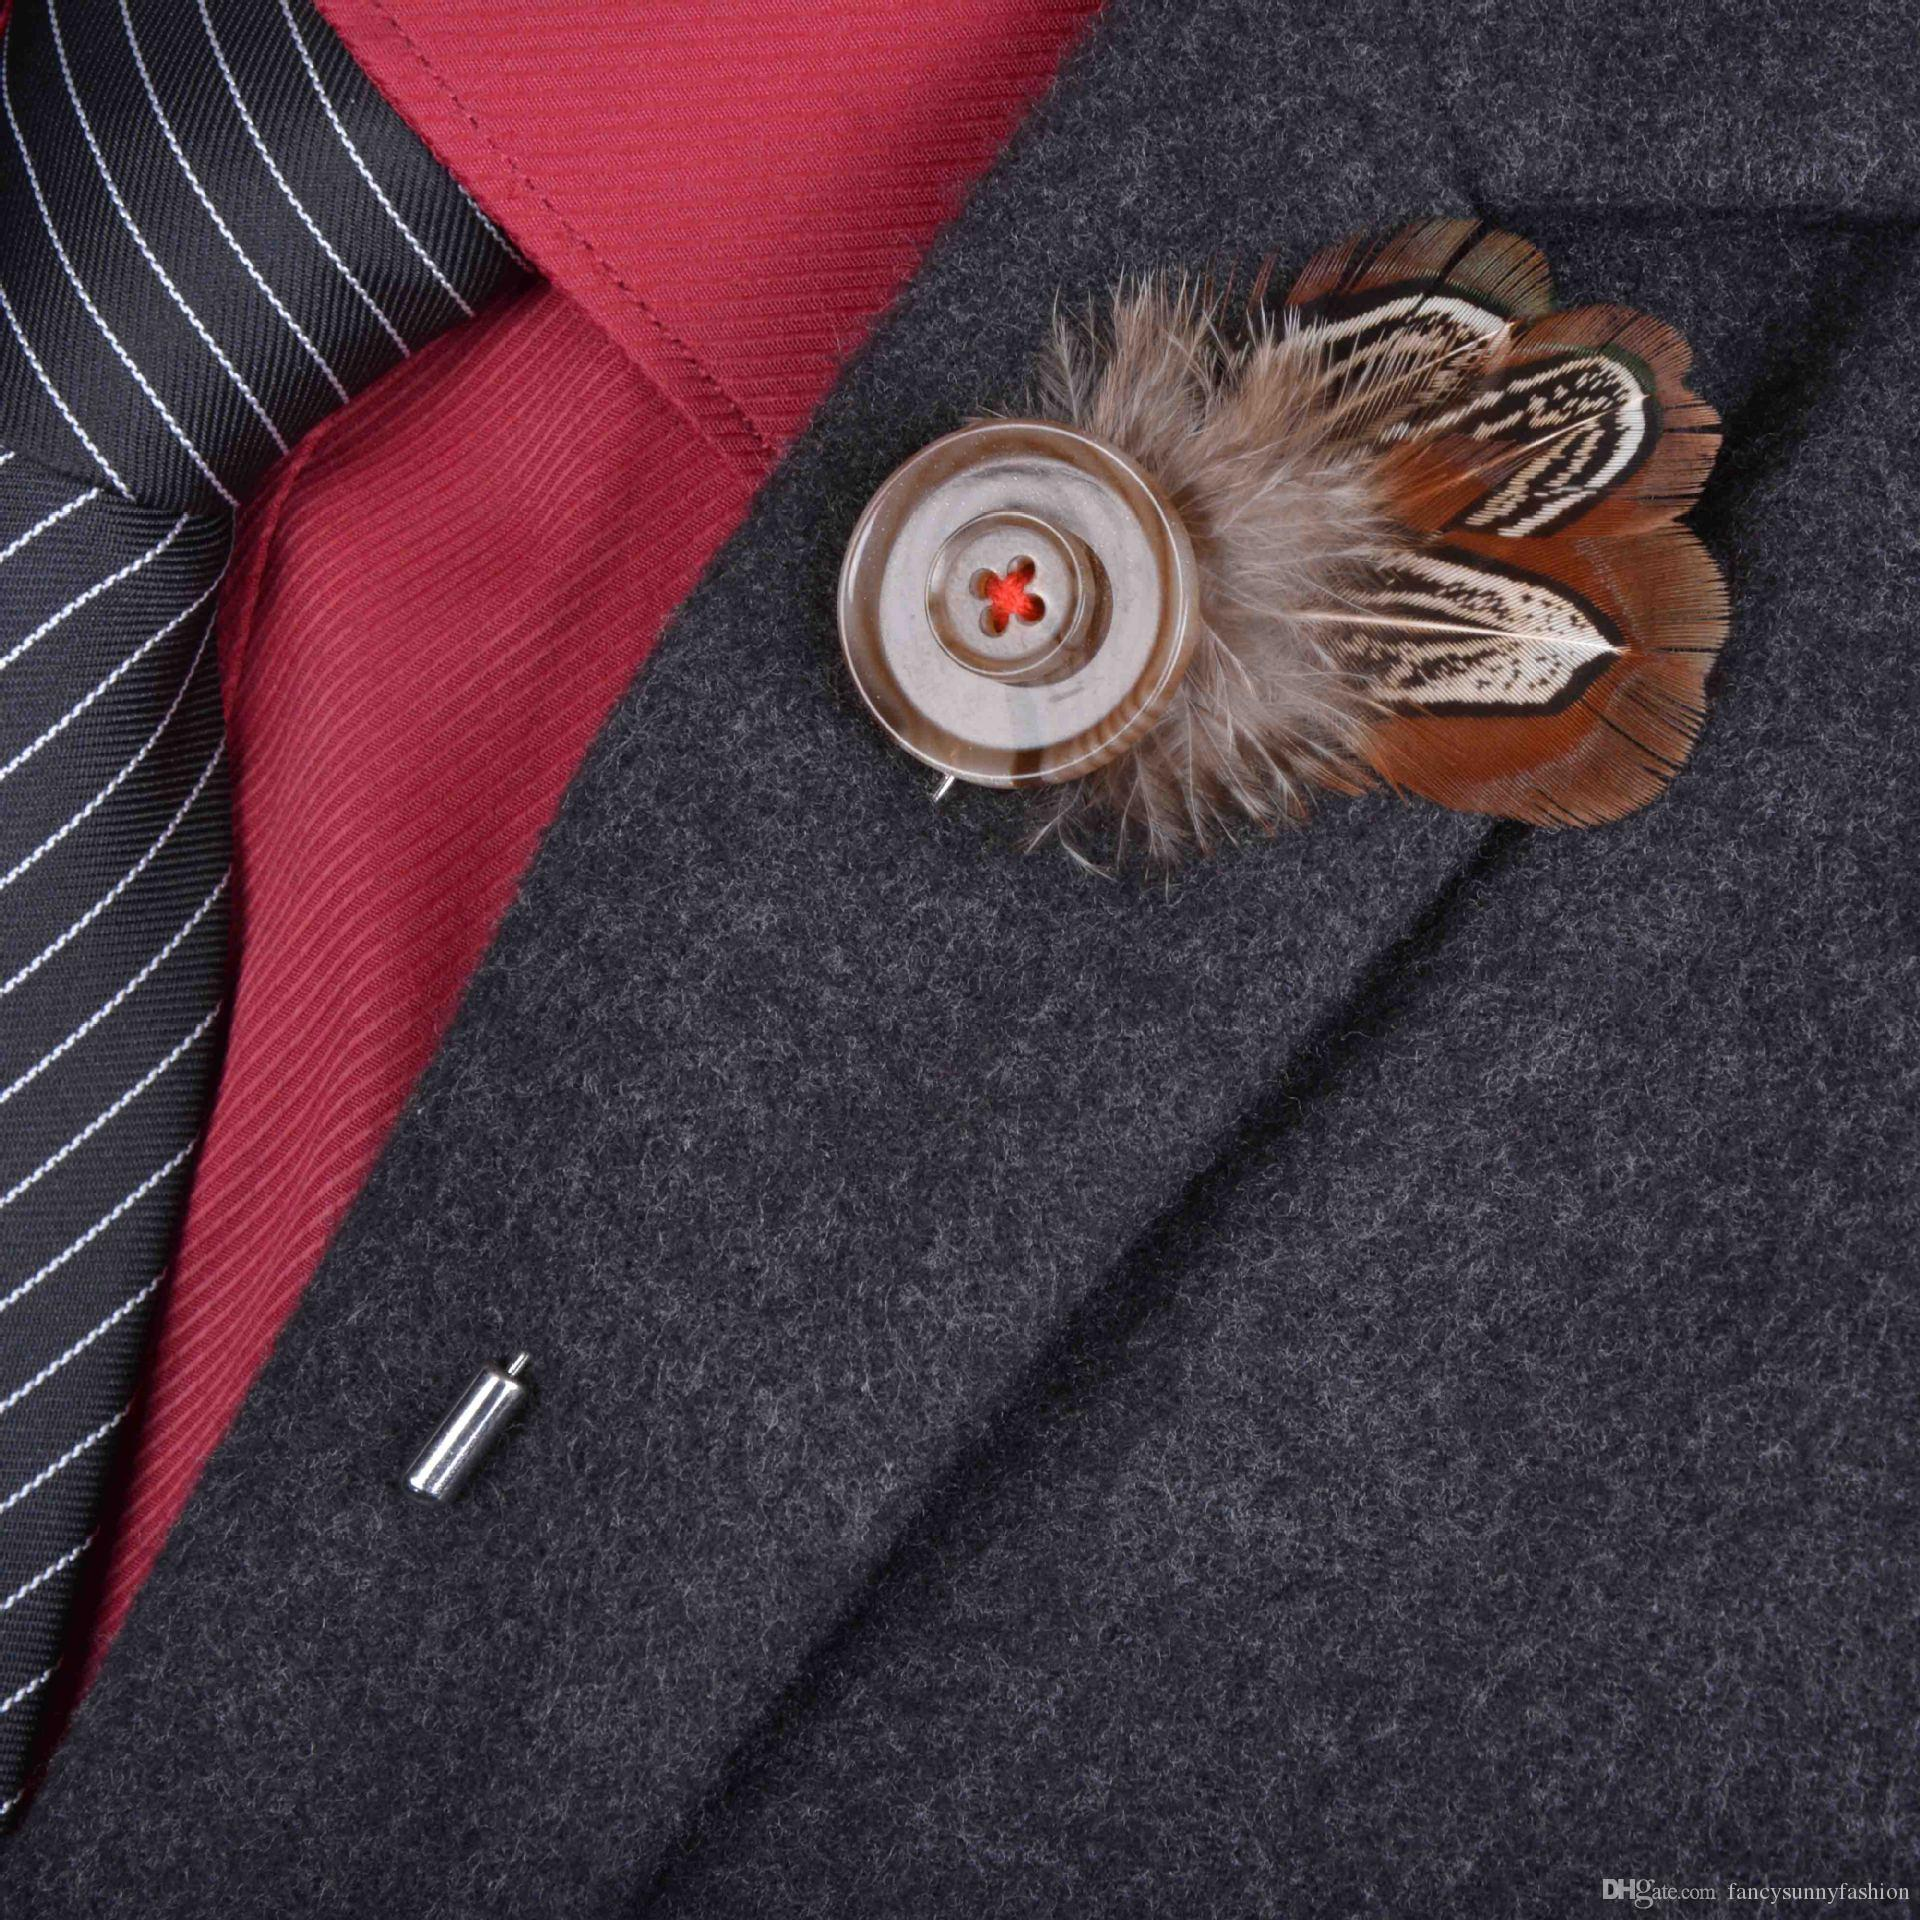 man fashion m dhgate com needle cheap new online product accessories collar suit by brooch emblem clip